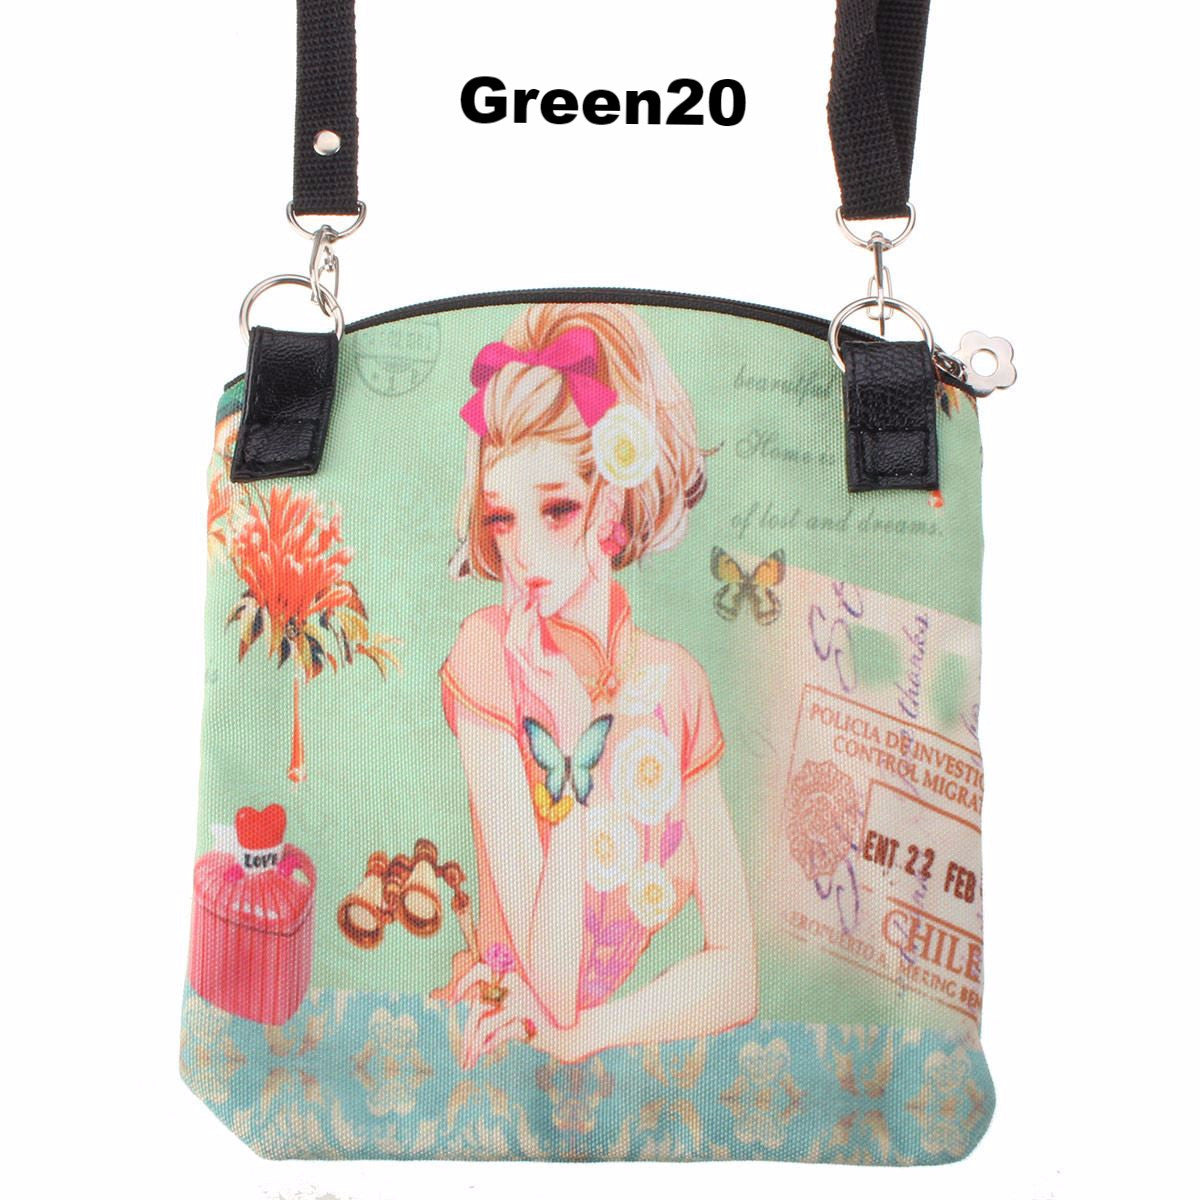 New Women Messenger Bags Vintage Canvas Printing Small Satchel Shoulder European Style Girls Handbag Lady Bolsa Crossbody Bag